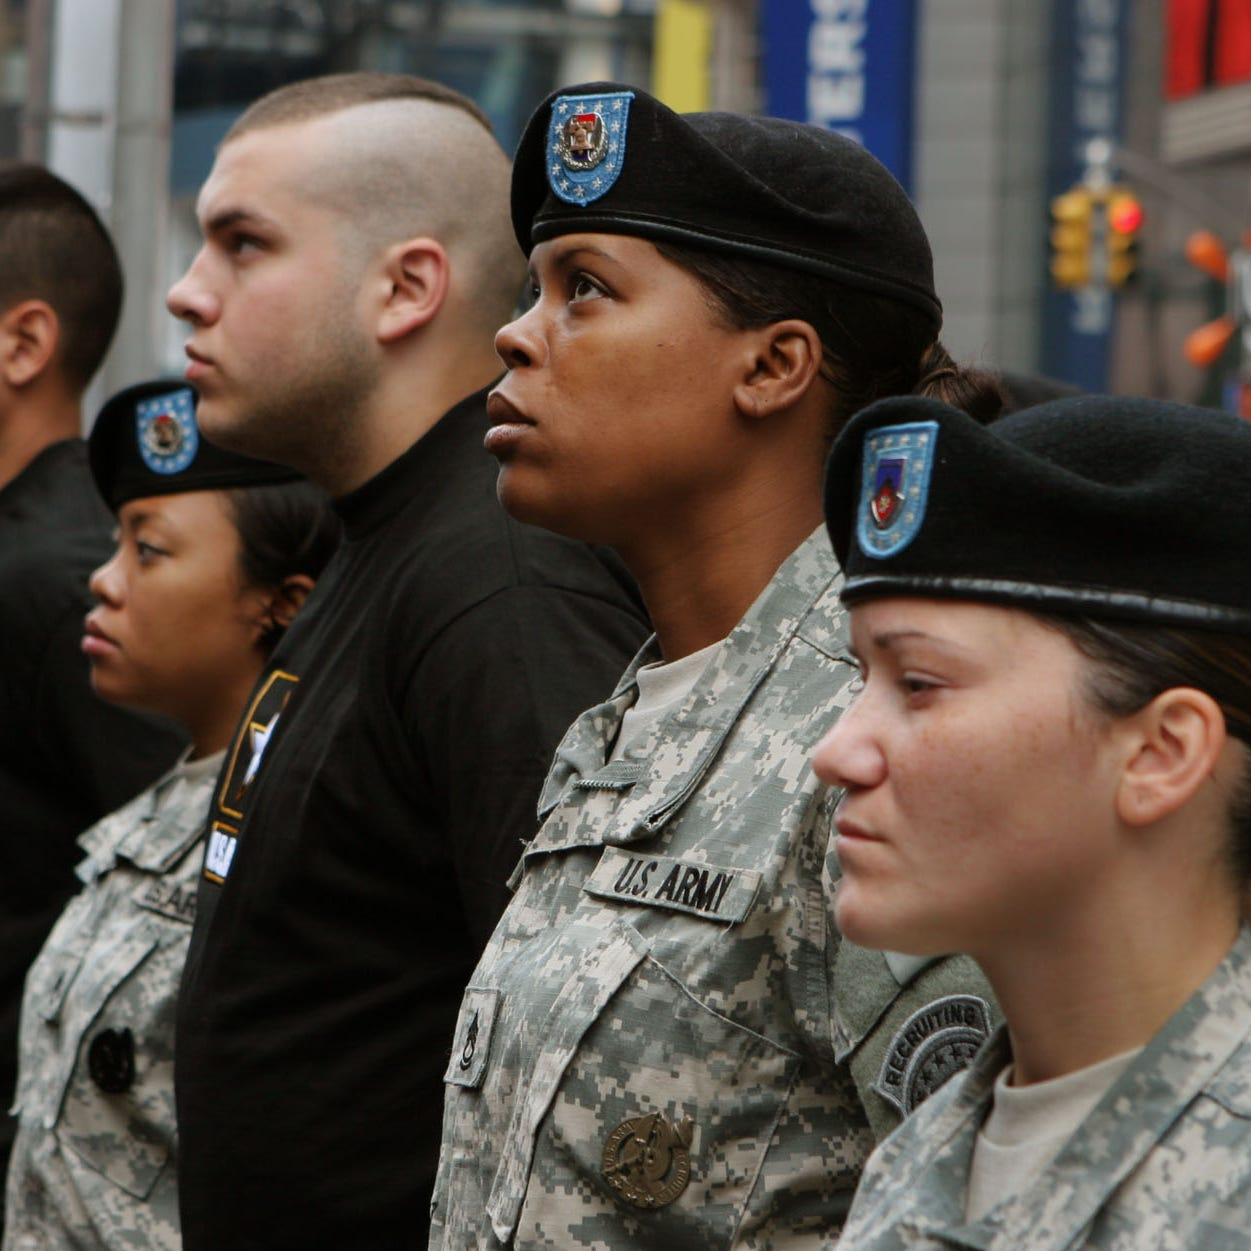 Include women in Selective Service registration